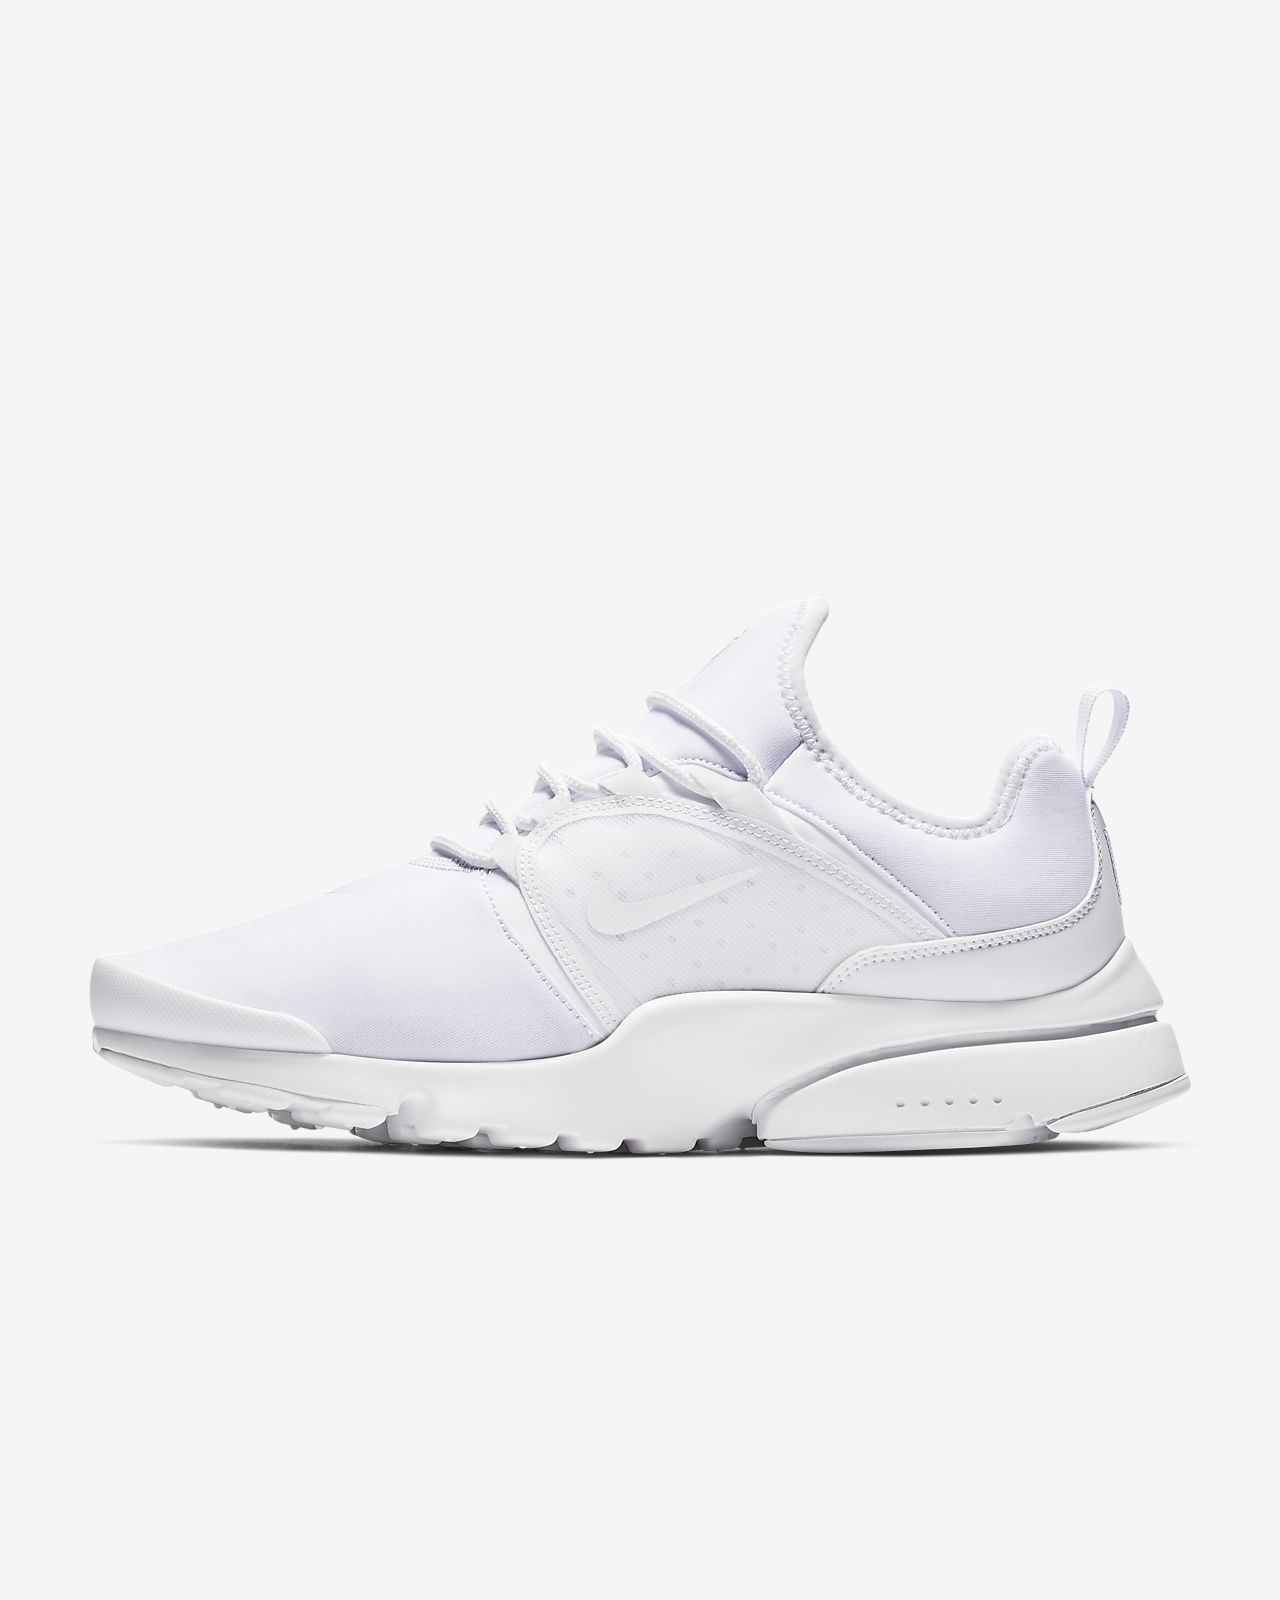 16acf02d95a2 Nike Presto Fly World Men s Shoe. Nike.com AU